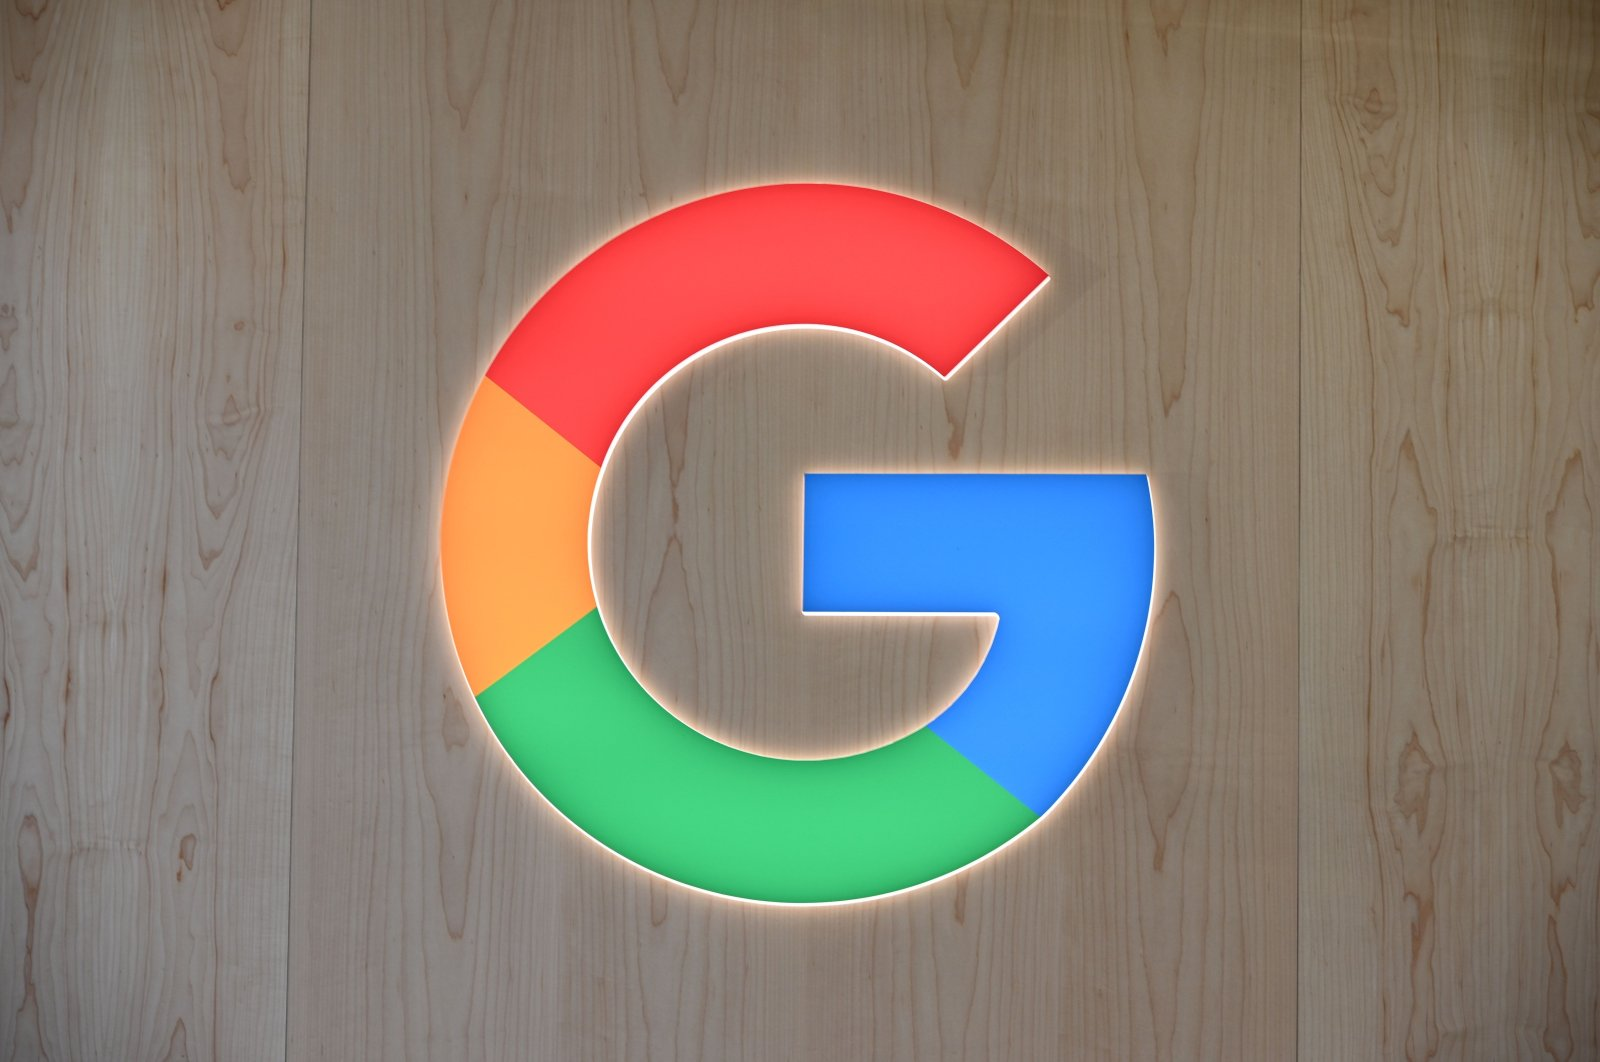 The Google logo is seen at the 2020 Consumer Electronics Show (CES) in Las Vegas, Nevada, U.S., Jan. 8, 2020. (AFP Photo)